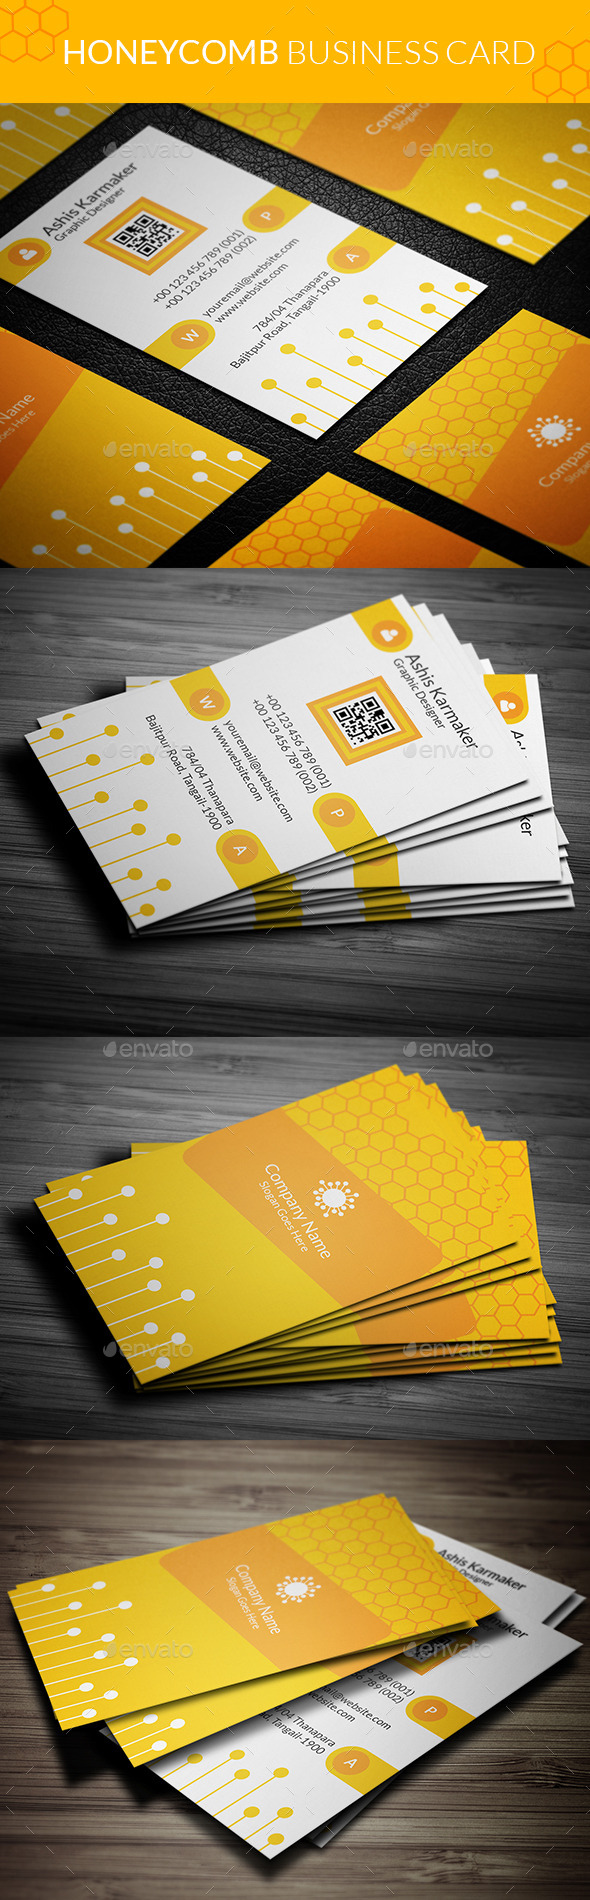 Honeycomb Business Card - Creative Business Cards